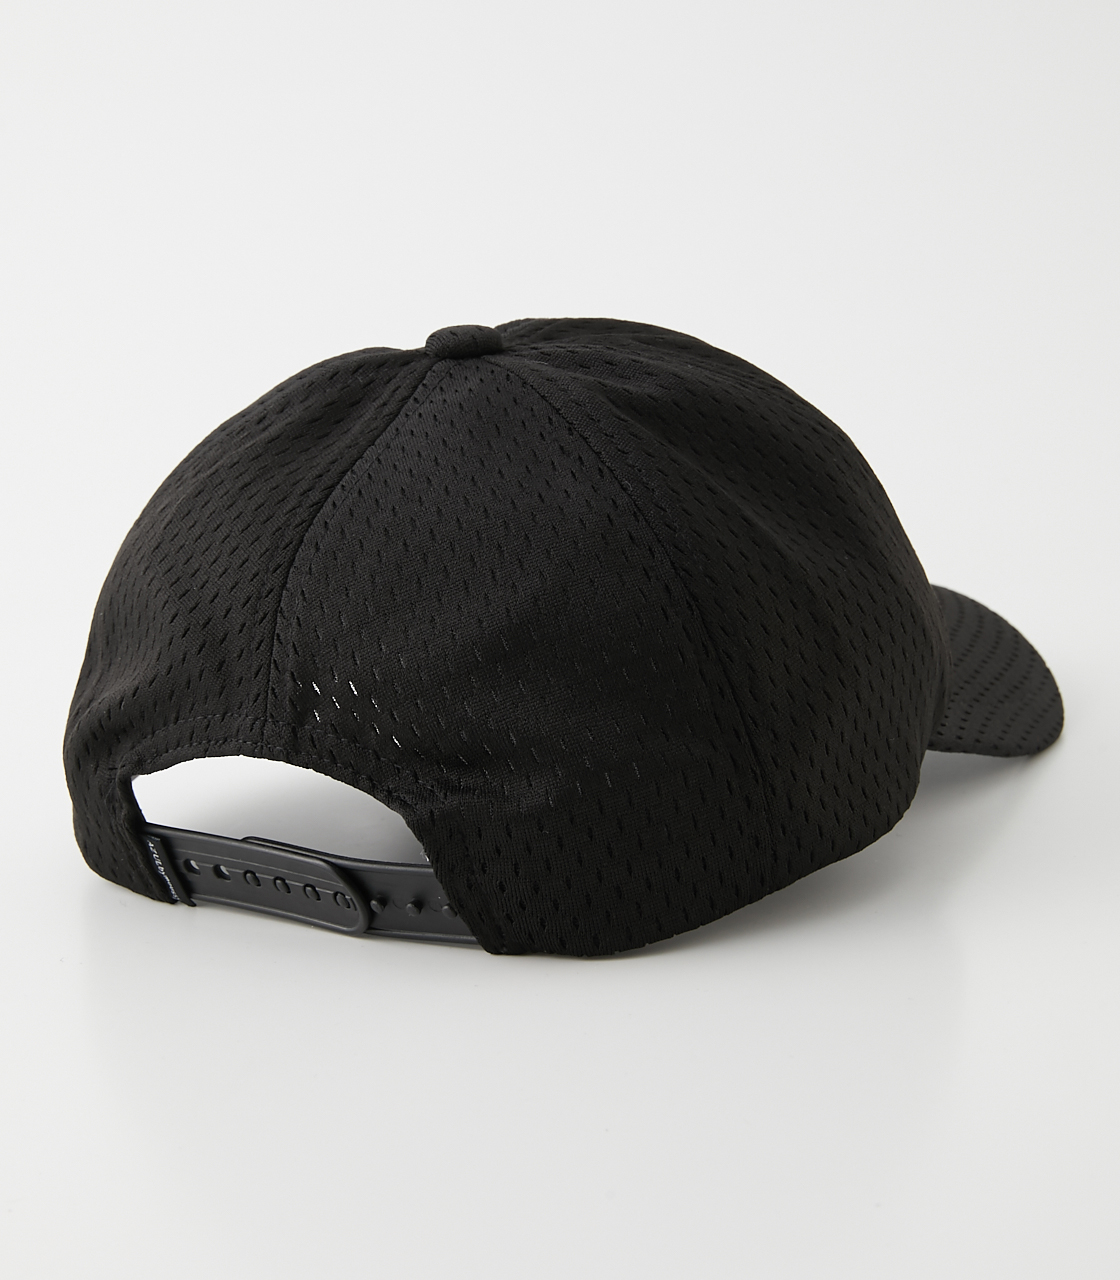 A LOGO ALL MESH CAP/アロゴオールメッシュキャップ 詳細画像 BLK 4